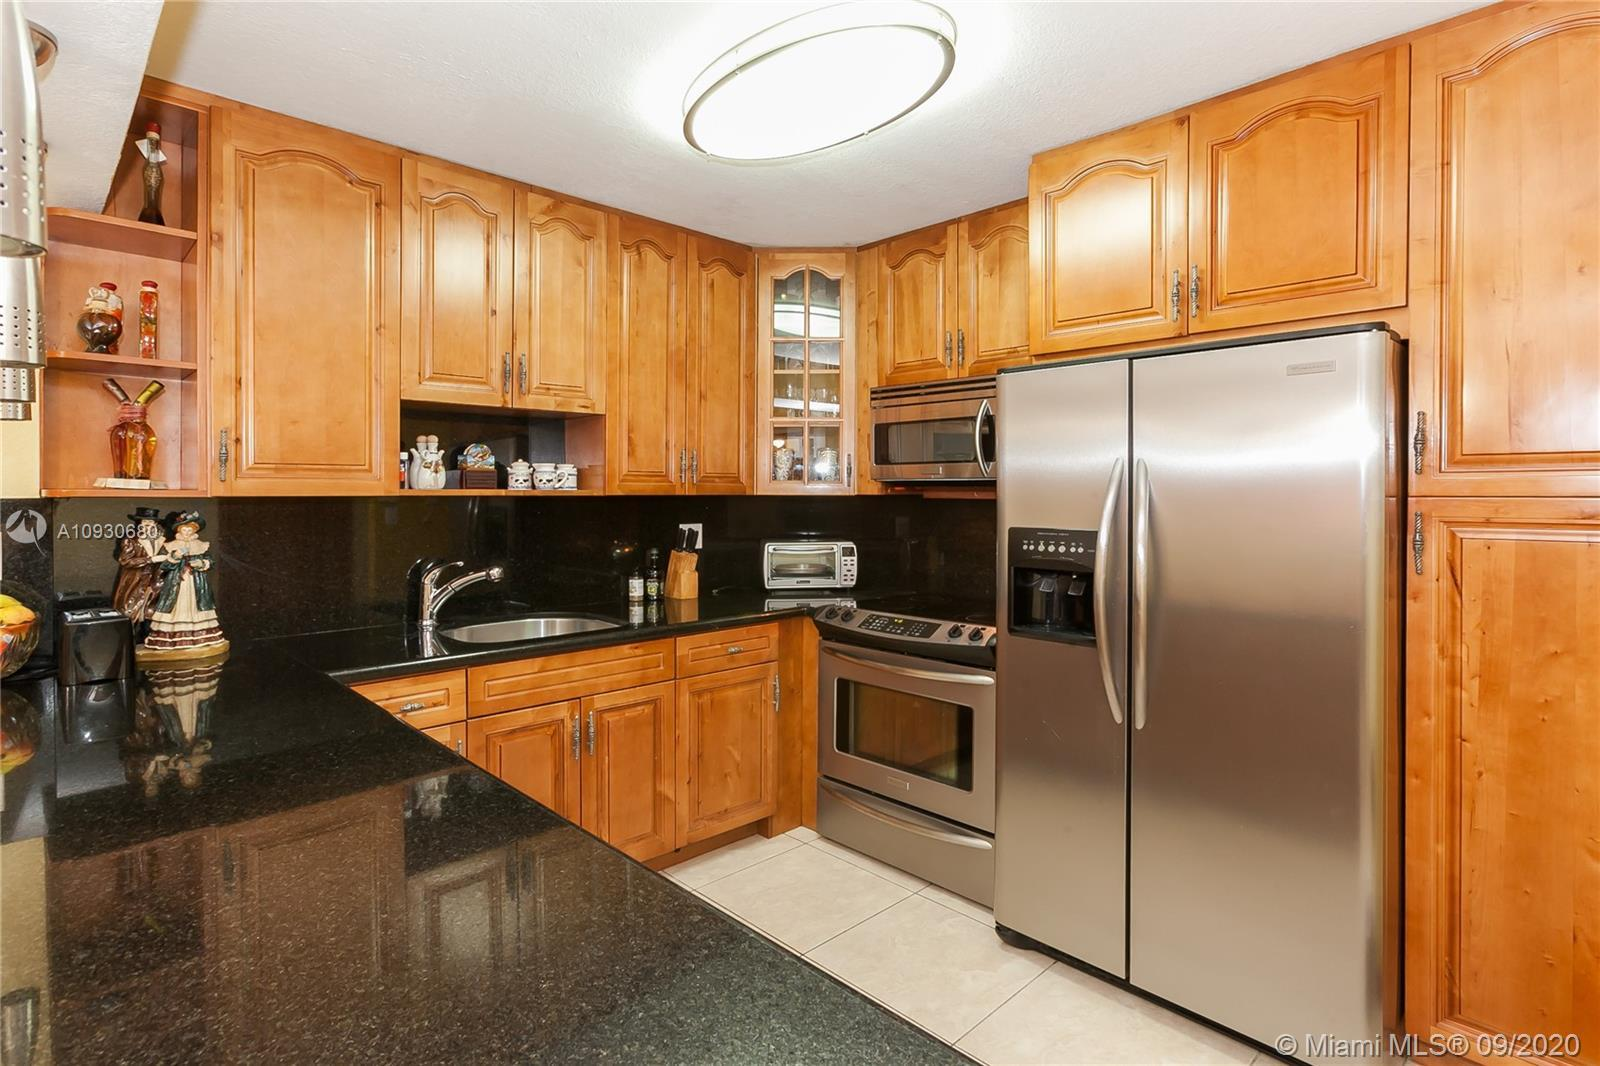 Remodeled 1 bedroom plus den with side ocean view. 2 full baths. Open renovated kitchen. AC replaced